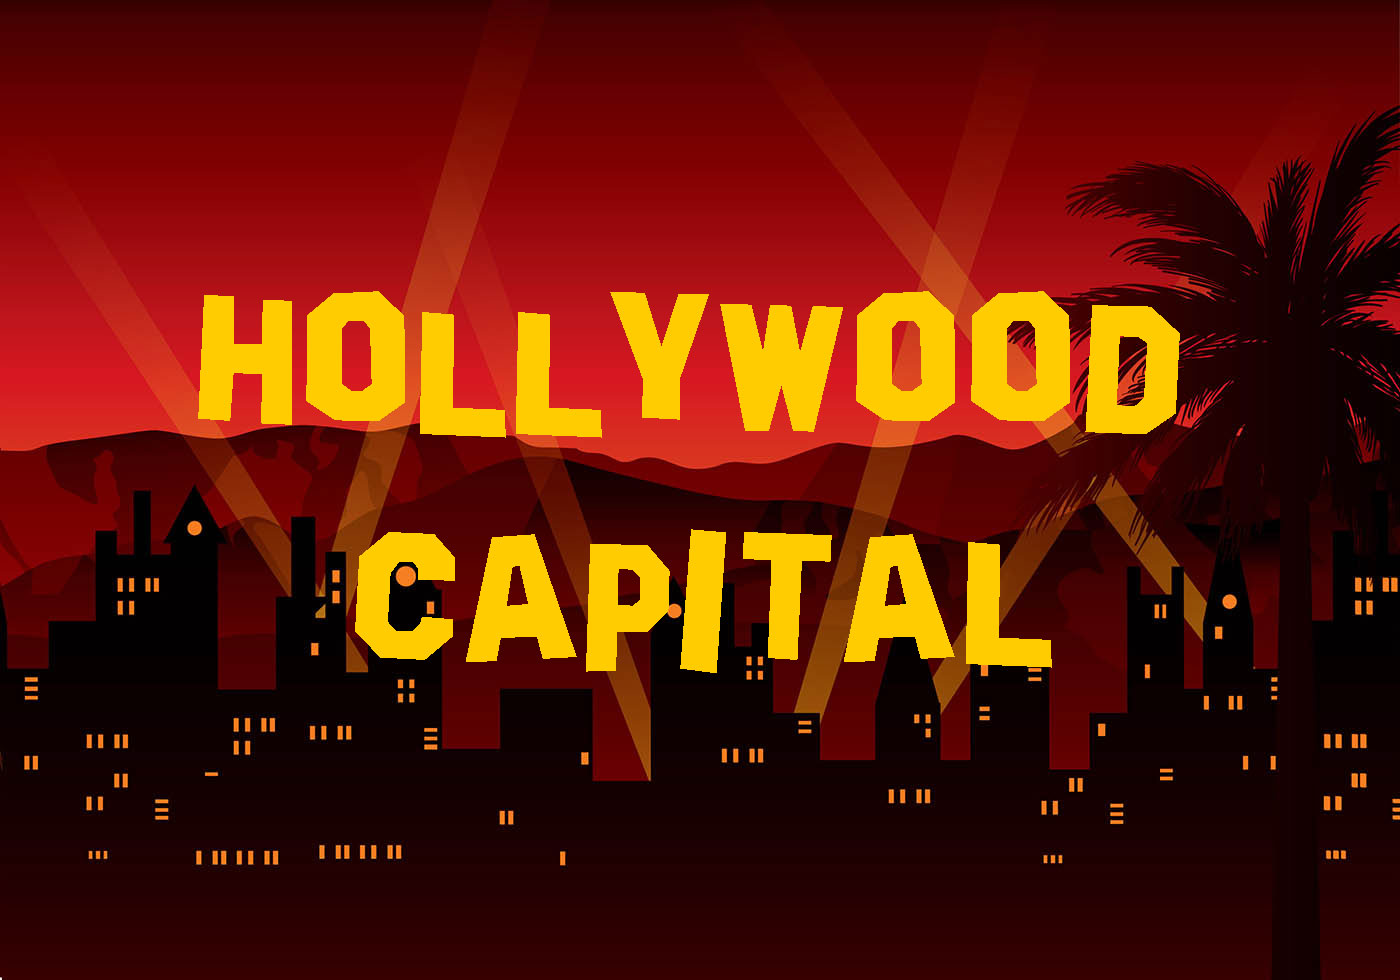 Hollywood Capital Distorted Font -1